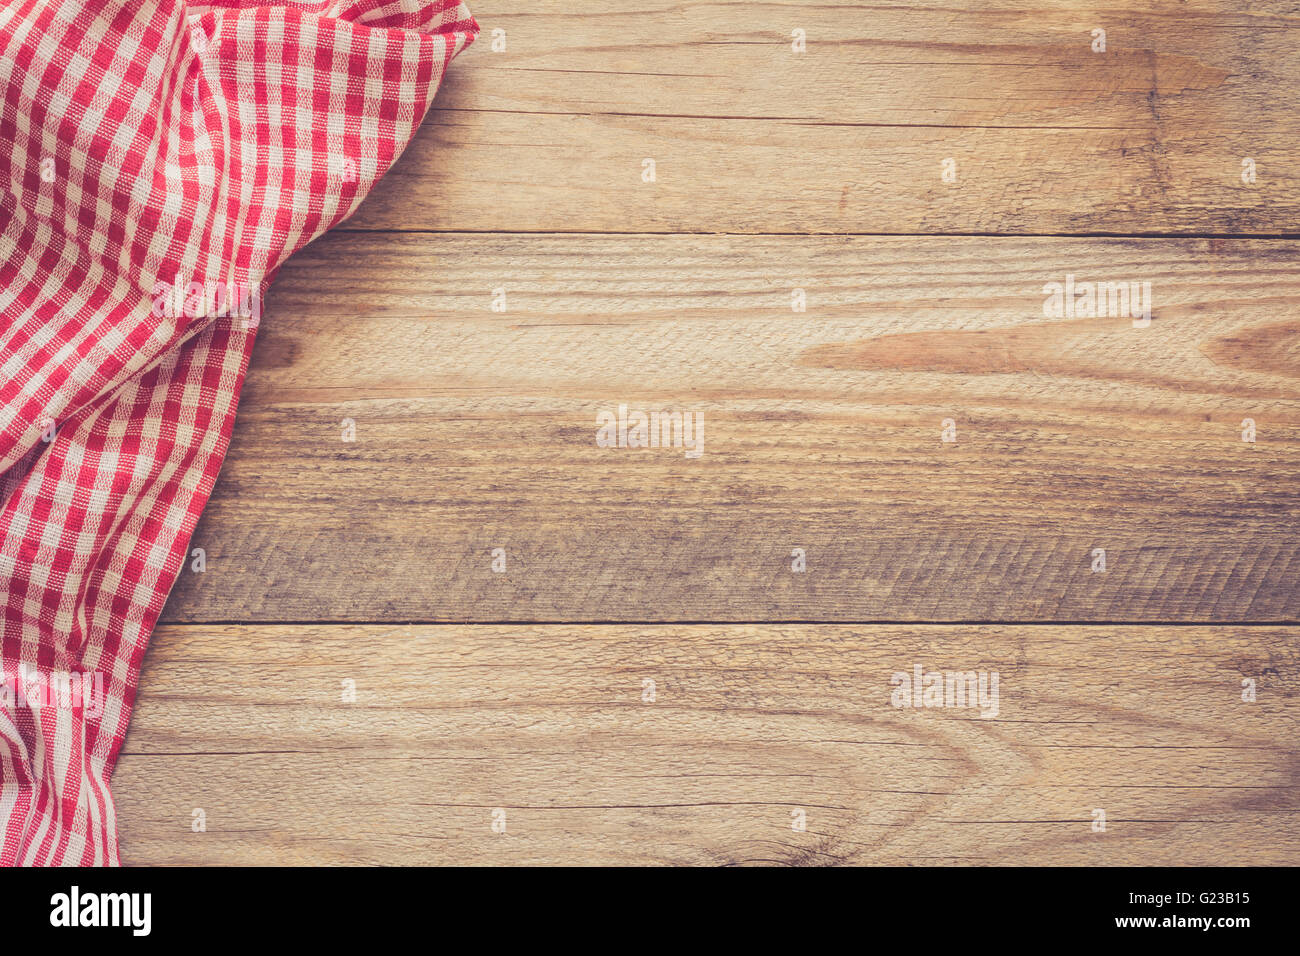 Wood table background hd - Stock Photo Wooden Background With Textile Cooking Food Pizza Wooden Table Background With Red And White Textile Copy Space For Text